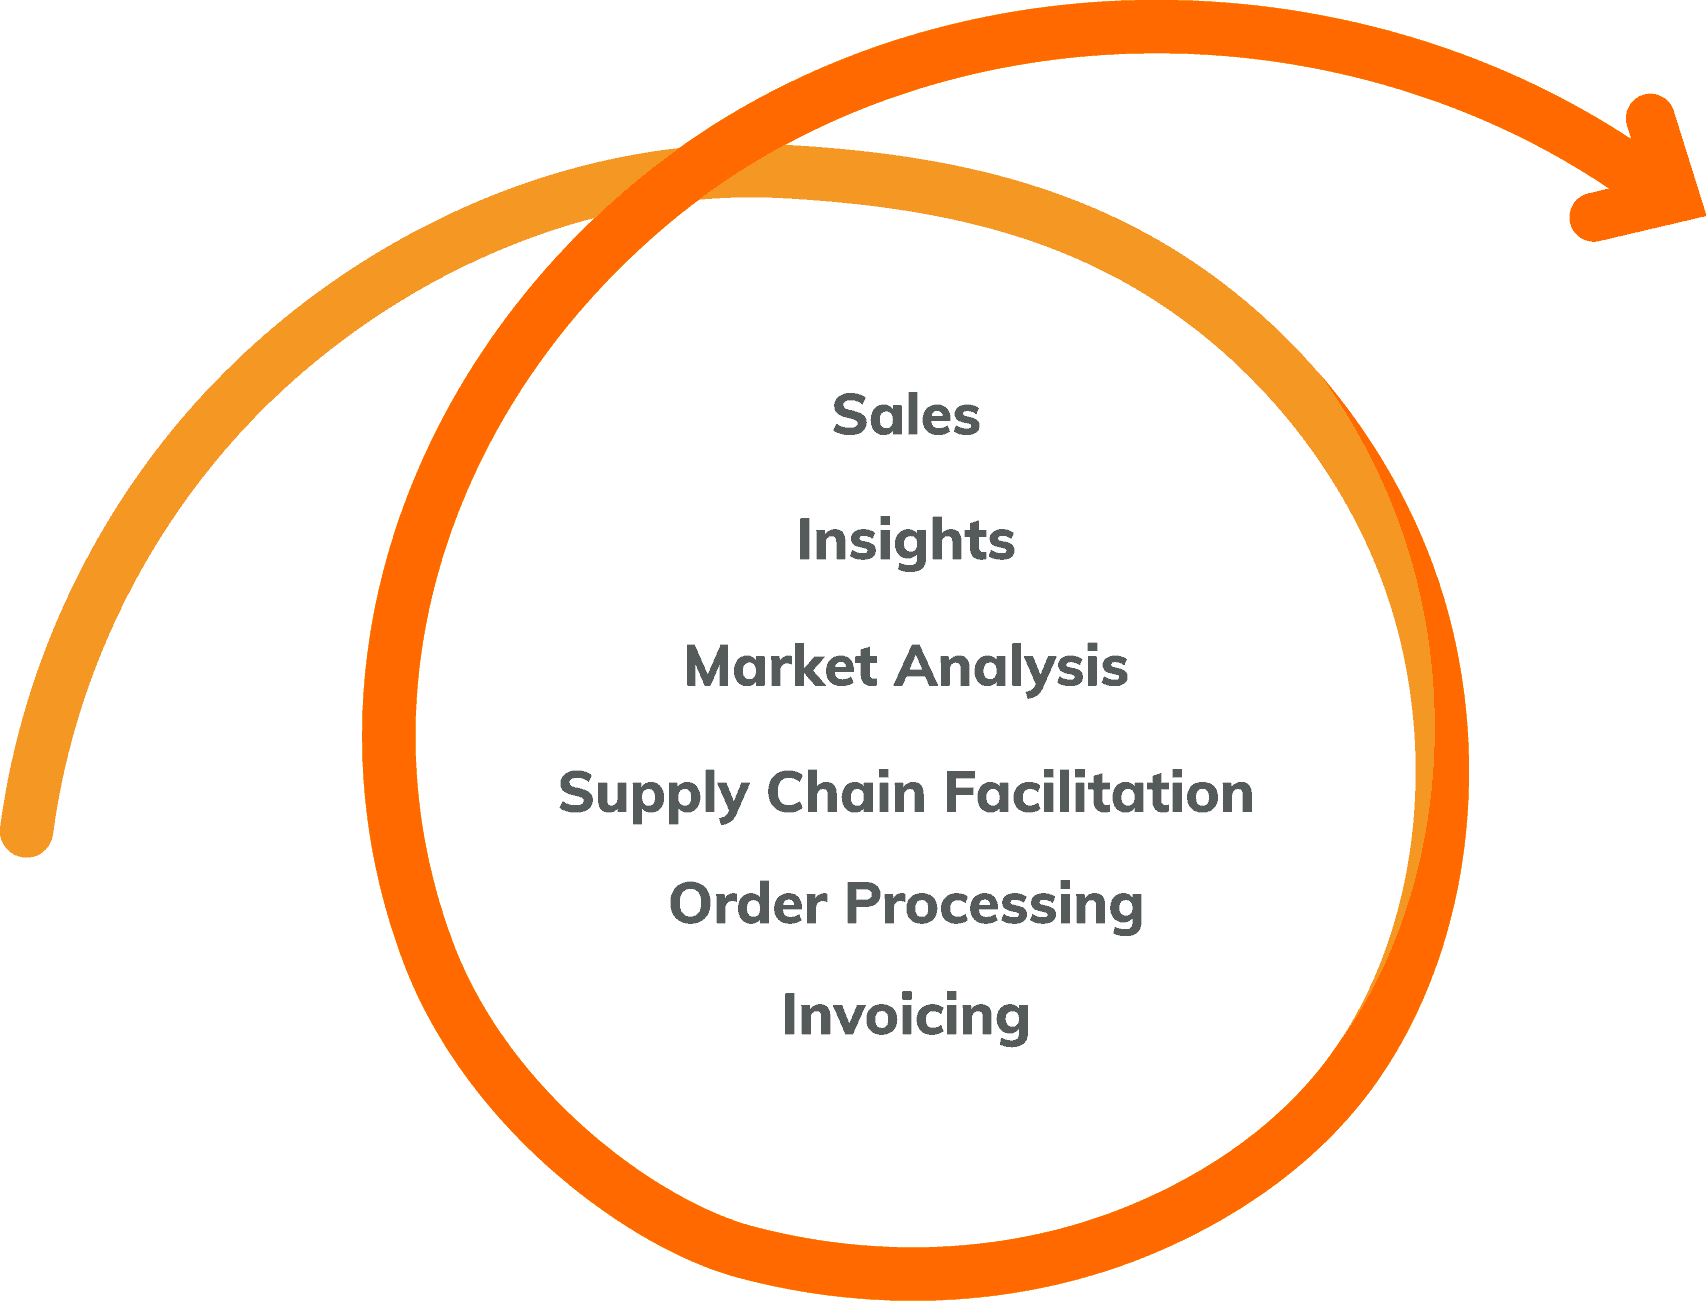 Sales | Insights | Market Analysis | Supply Chain Facilitation | Order Processing | Invoicing